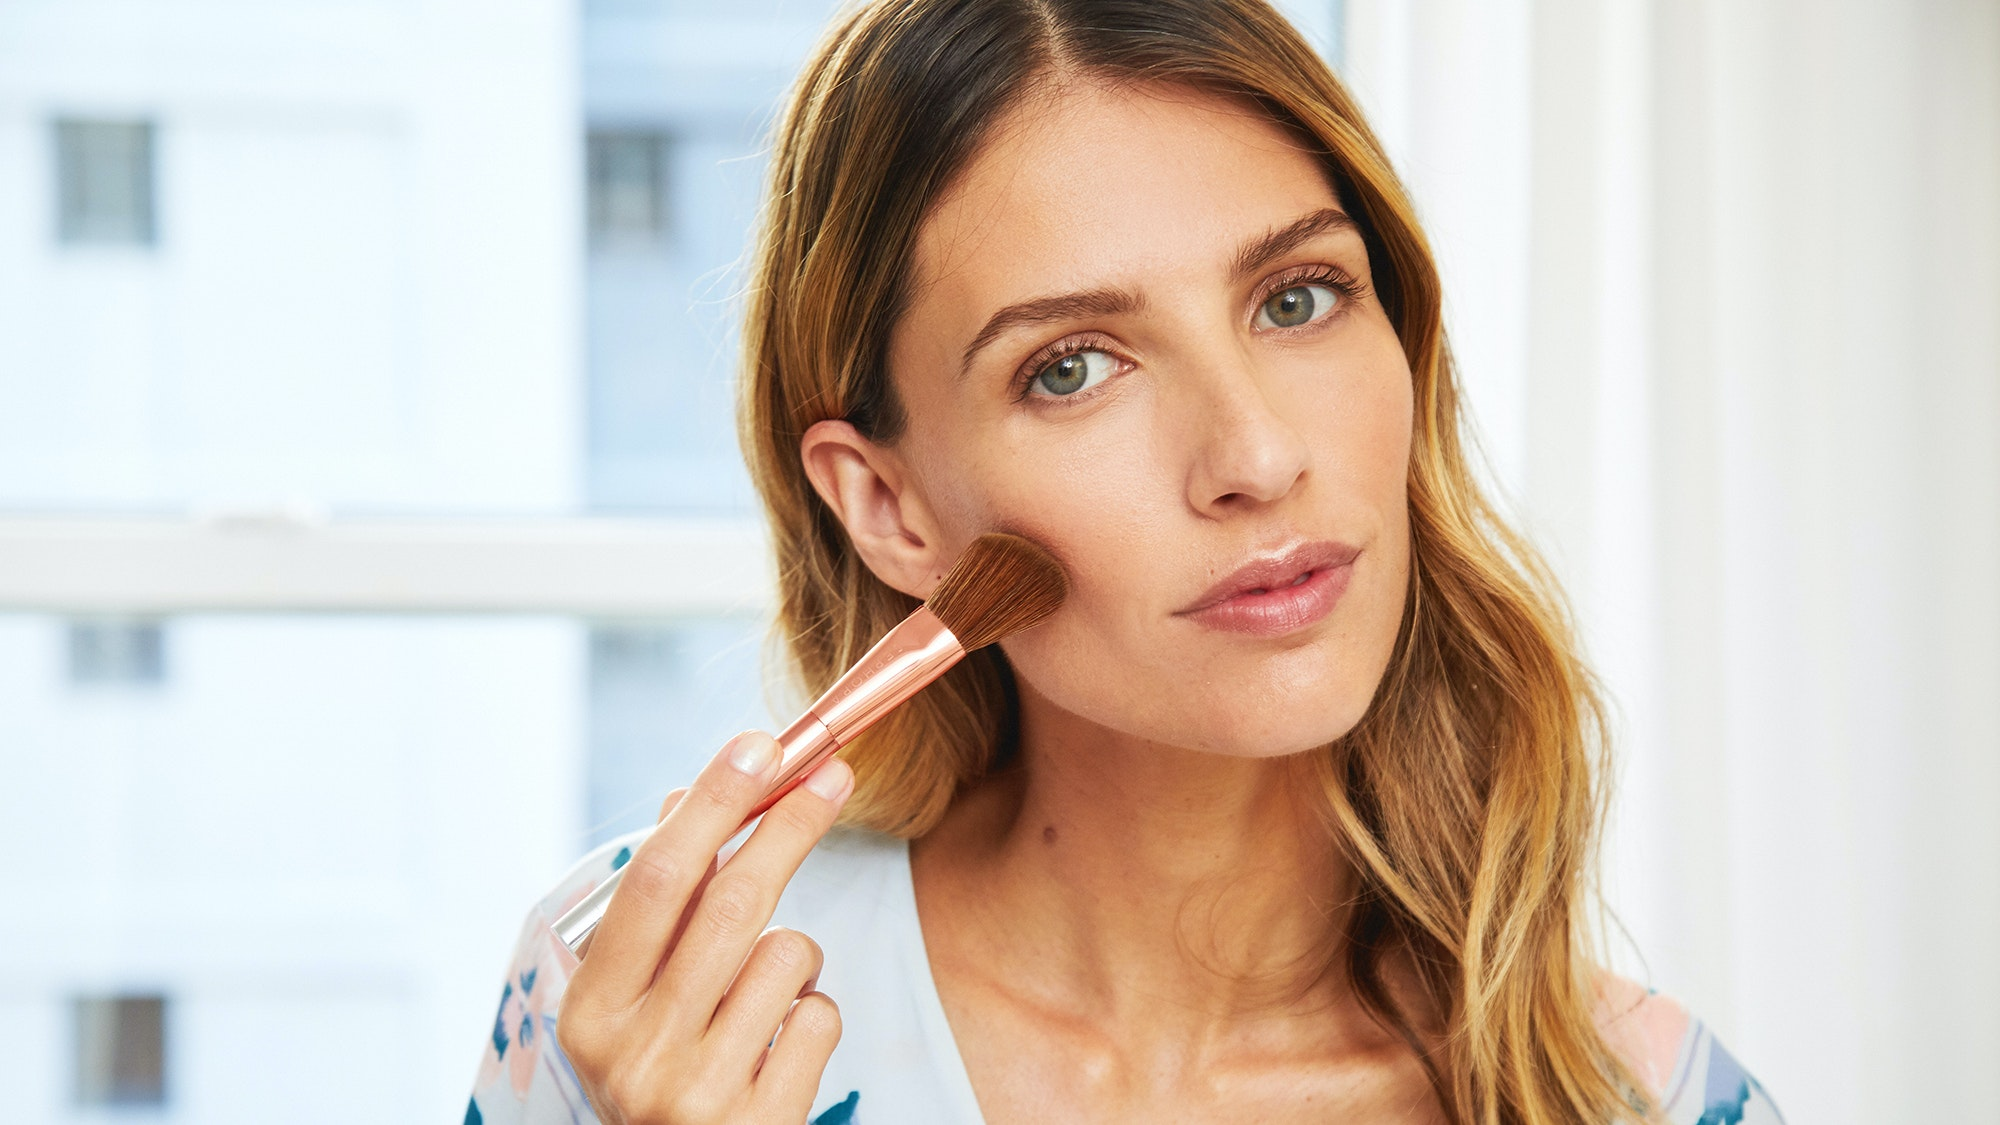 5 Makeup Artist-Recommended Products You Should Consider Trying During Treatment Downtime